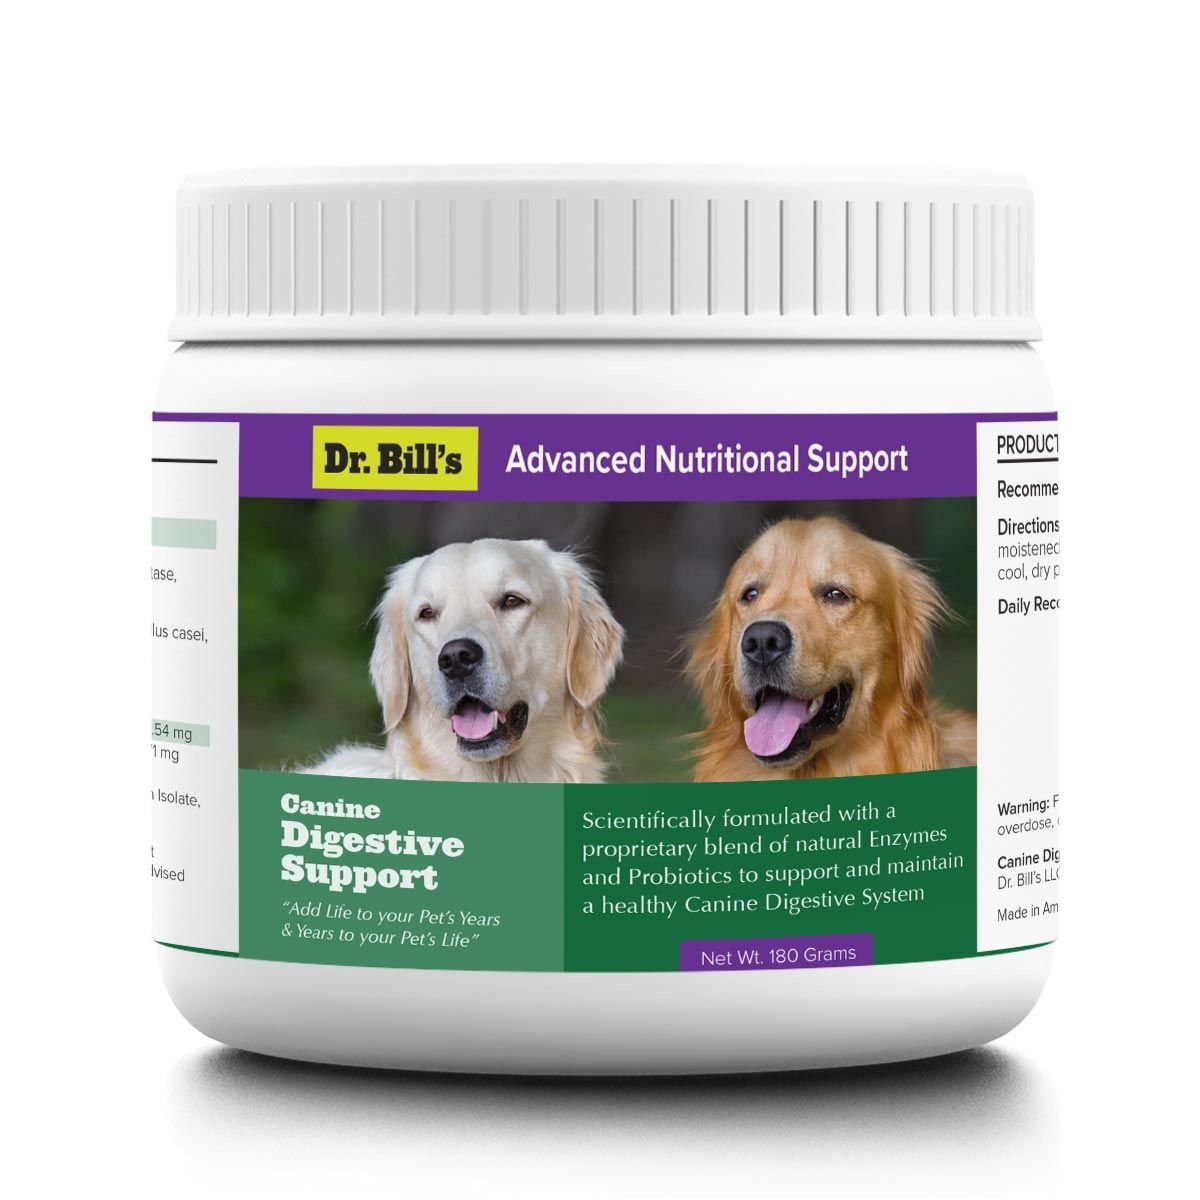 Dr. Bill's Canine Digestive Support Pet Supplement - Probiotics for Dogs with Prebiotics & Natural Digestive Enzymes - Improve Gut Health, Immunity, Allergies, Diarrhea, Constipation, Bad Breath